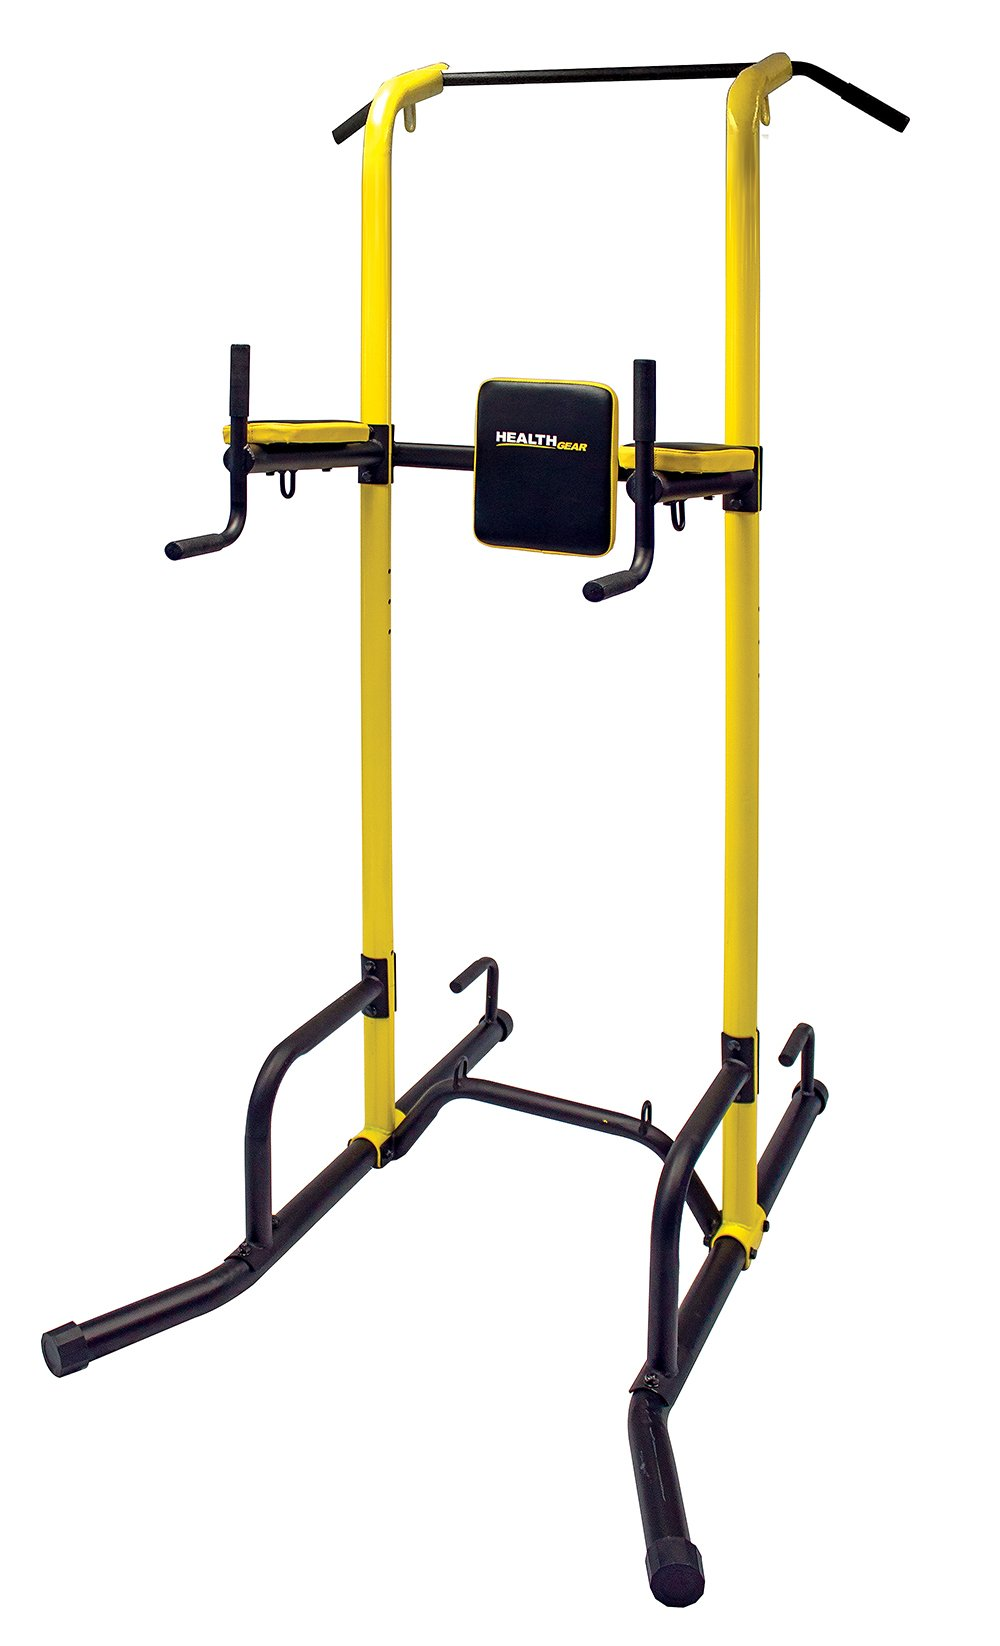 Health Gear PT600 Deluxe Power Tower